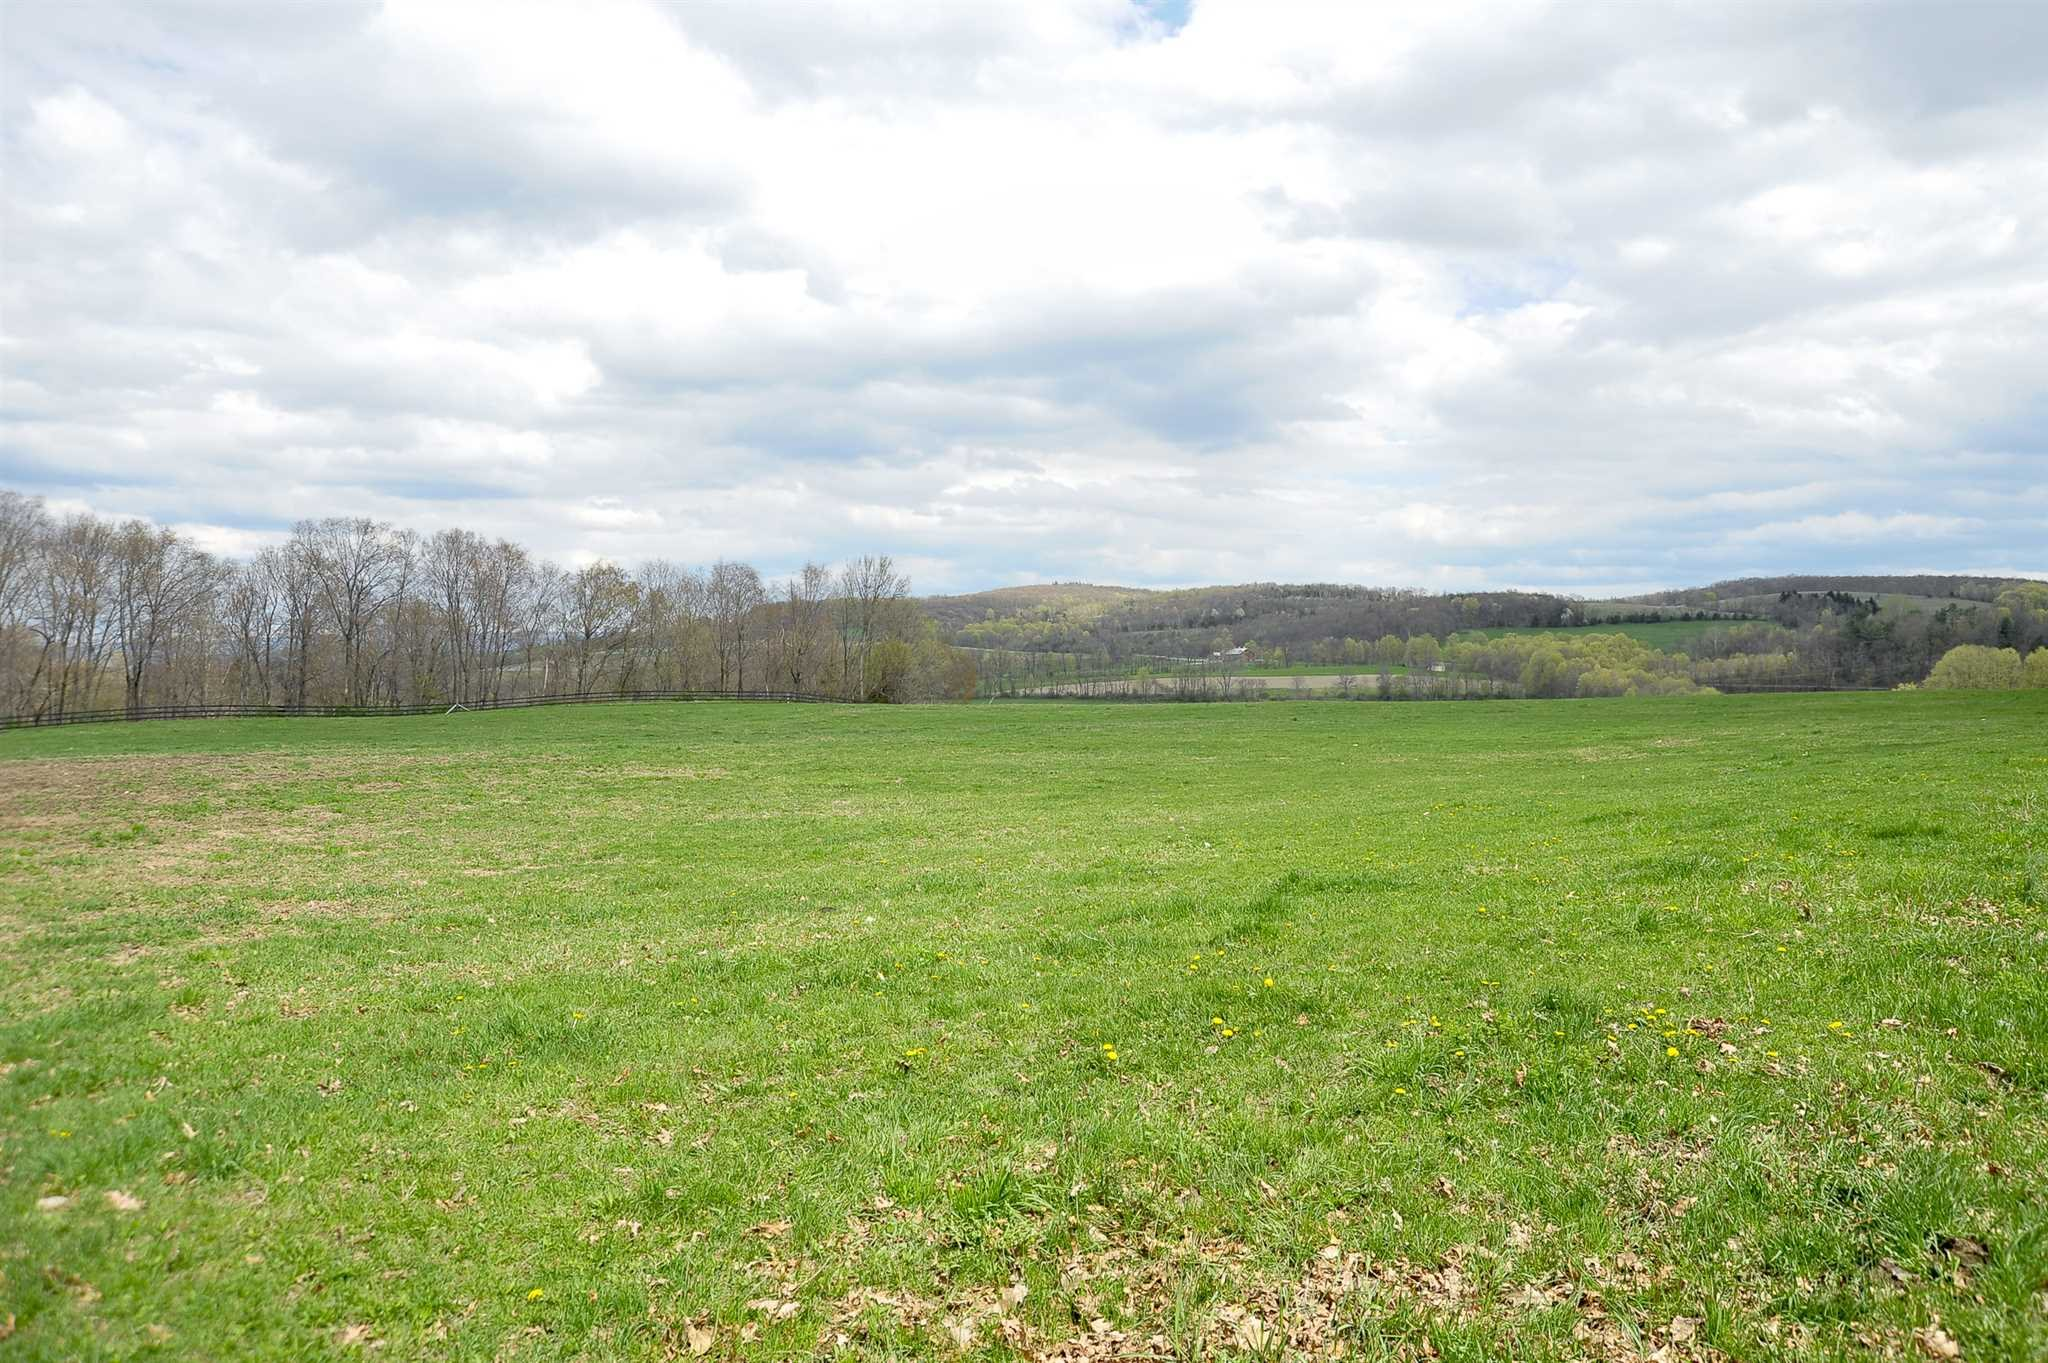 Additional photo for property listing at 461 SILVERNAILS ROAD 461 SILVERNAILS ROAD Gallatin, New York 12567 United States